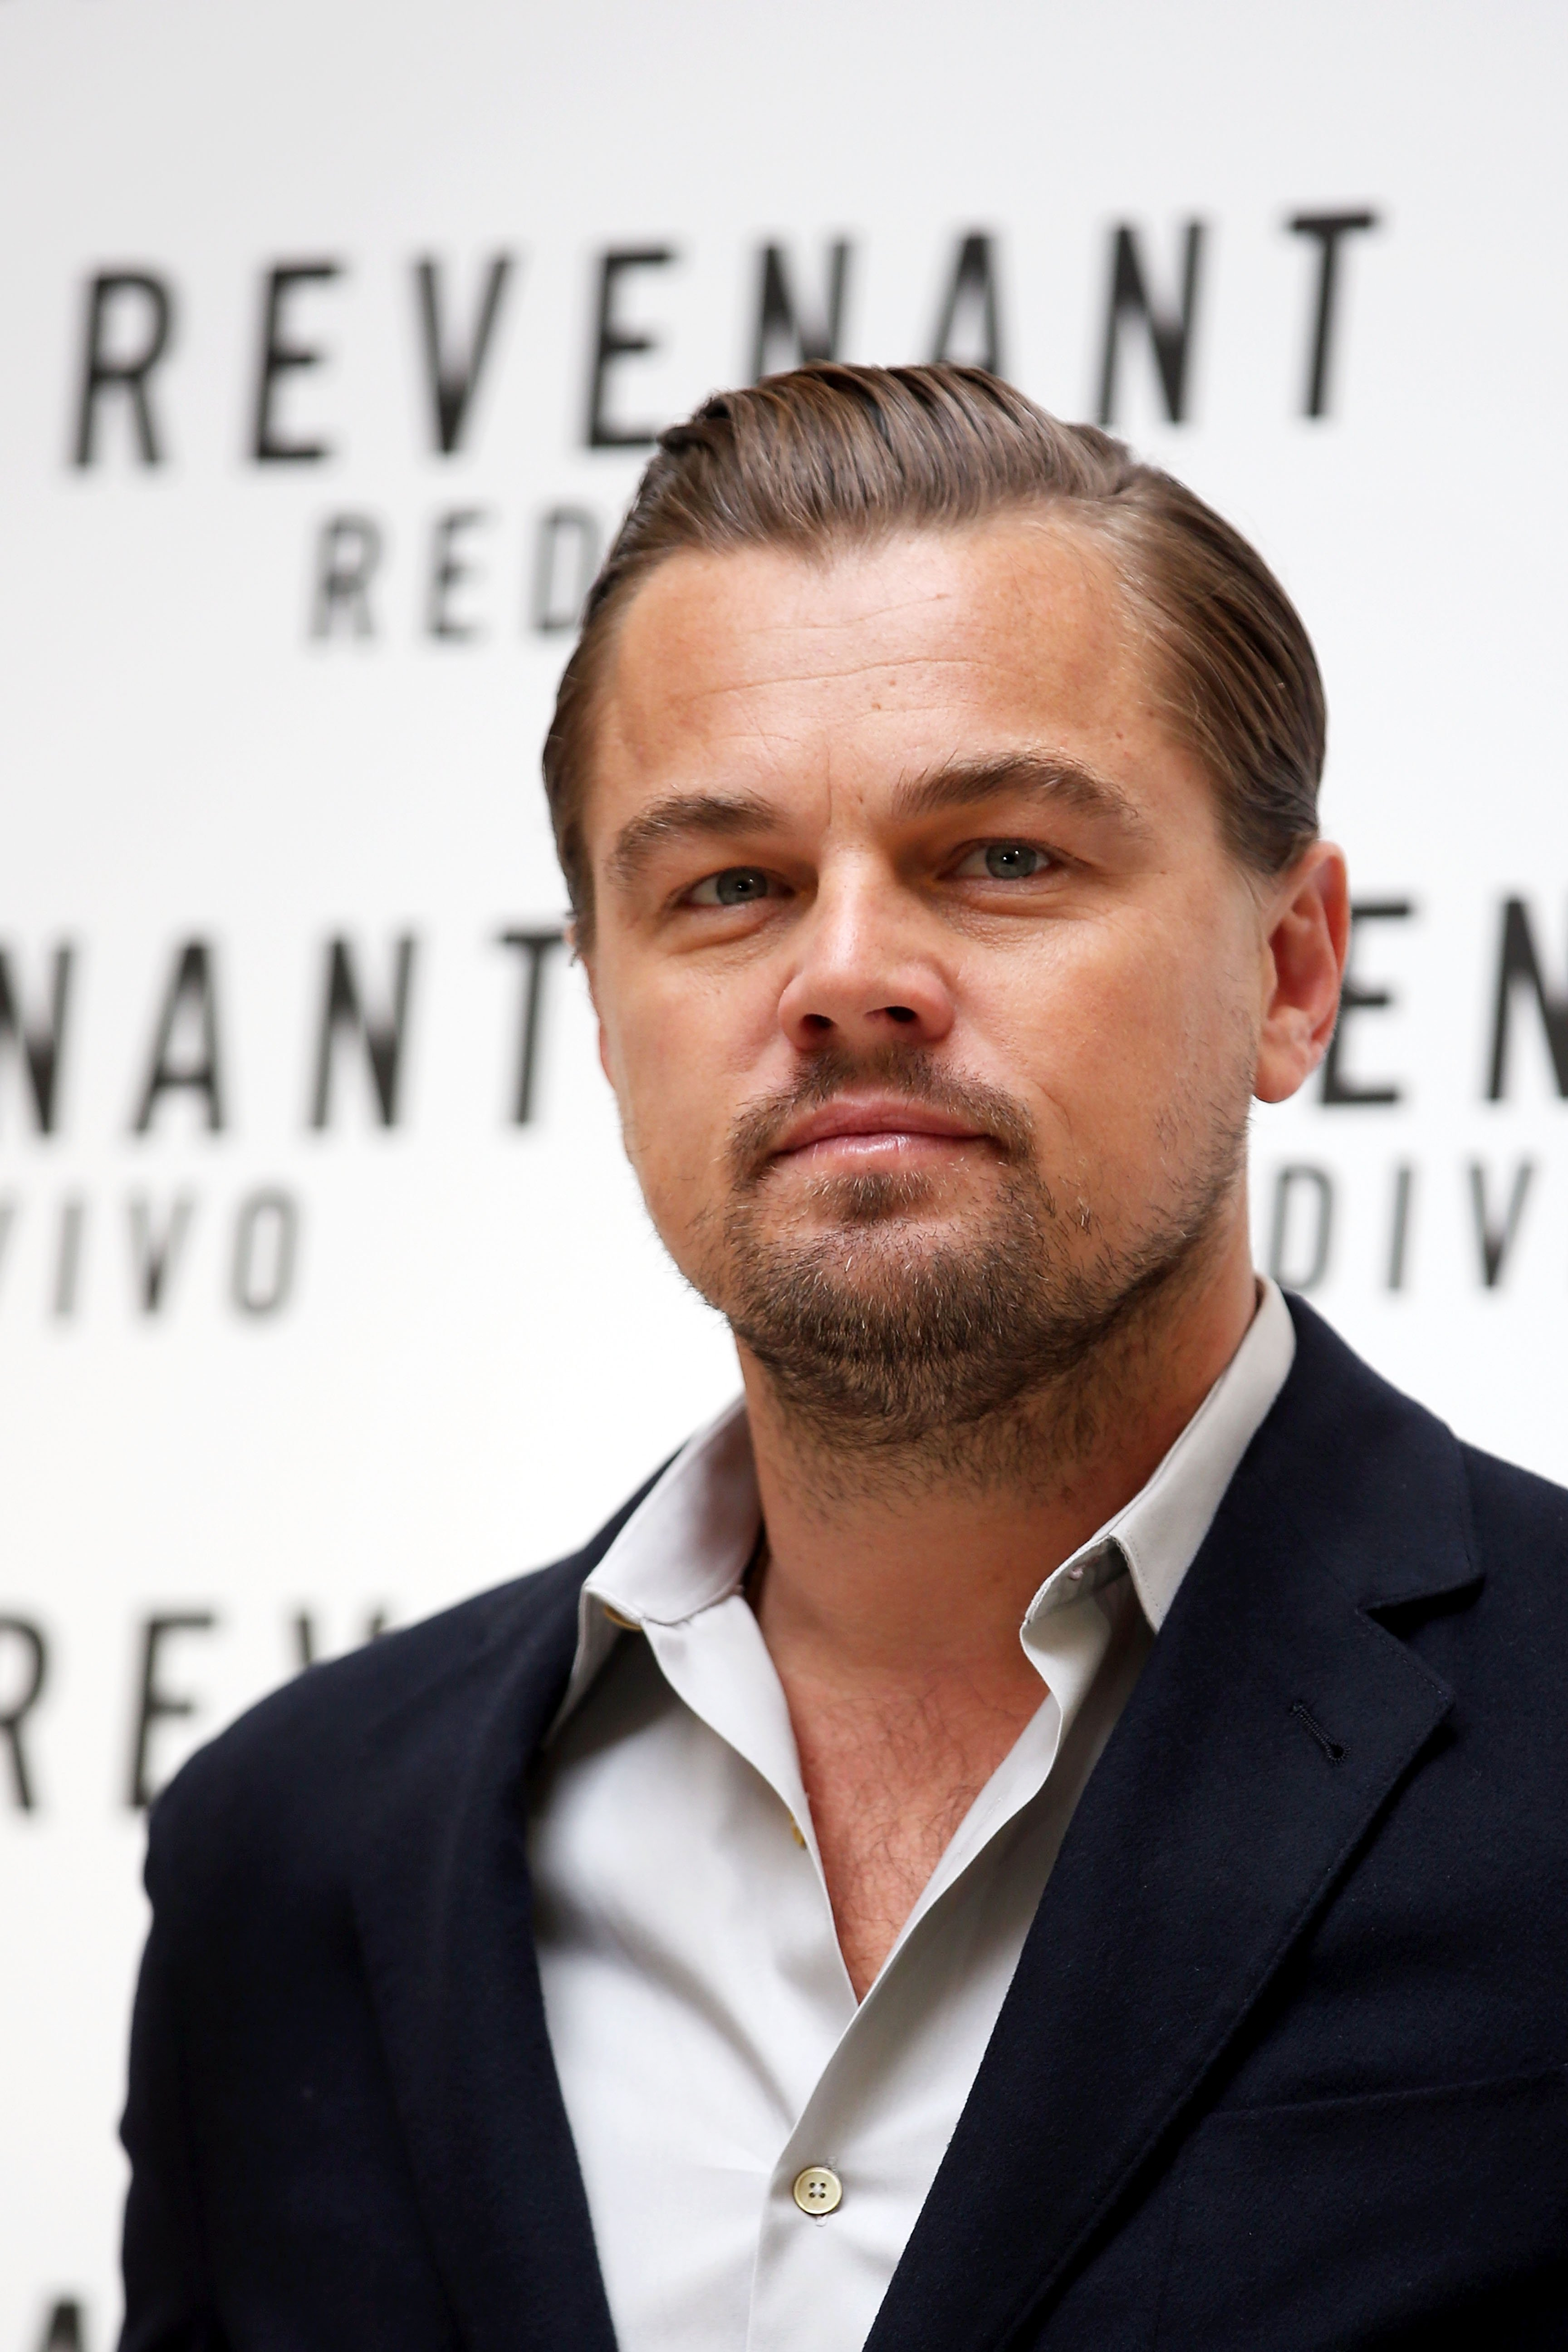 Image Source: Getty Images/Leonardo at a event of his movie: The Revenant